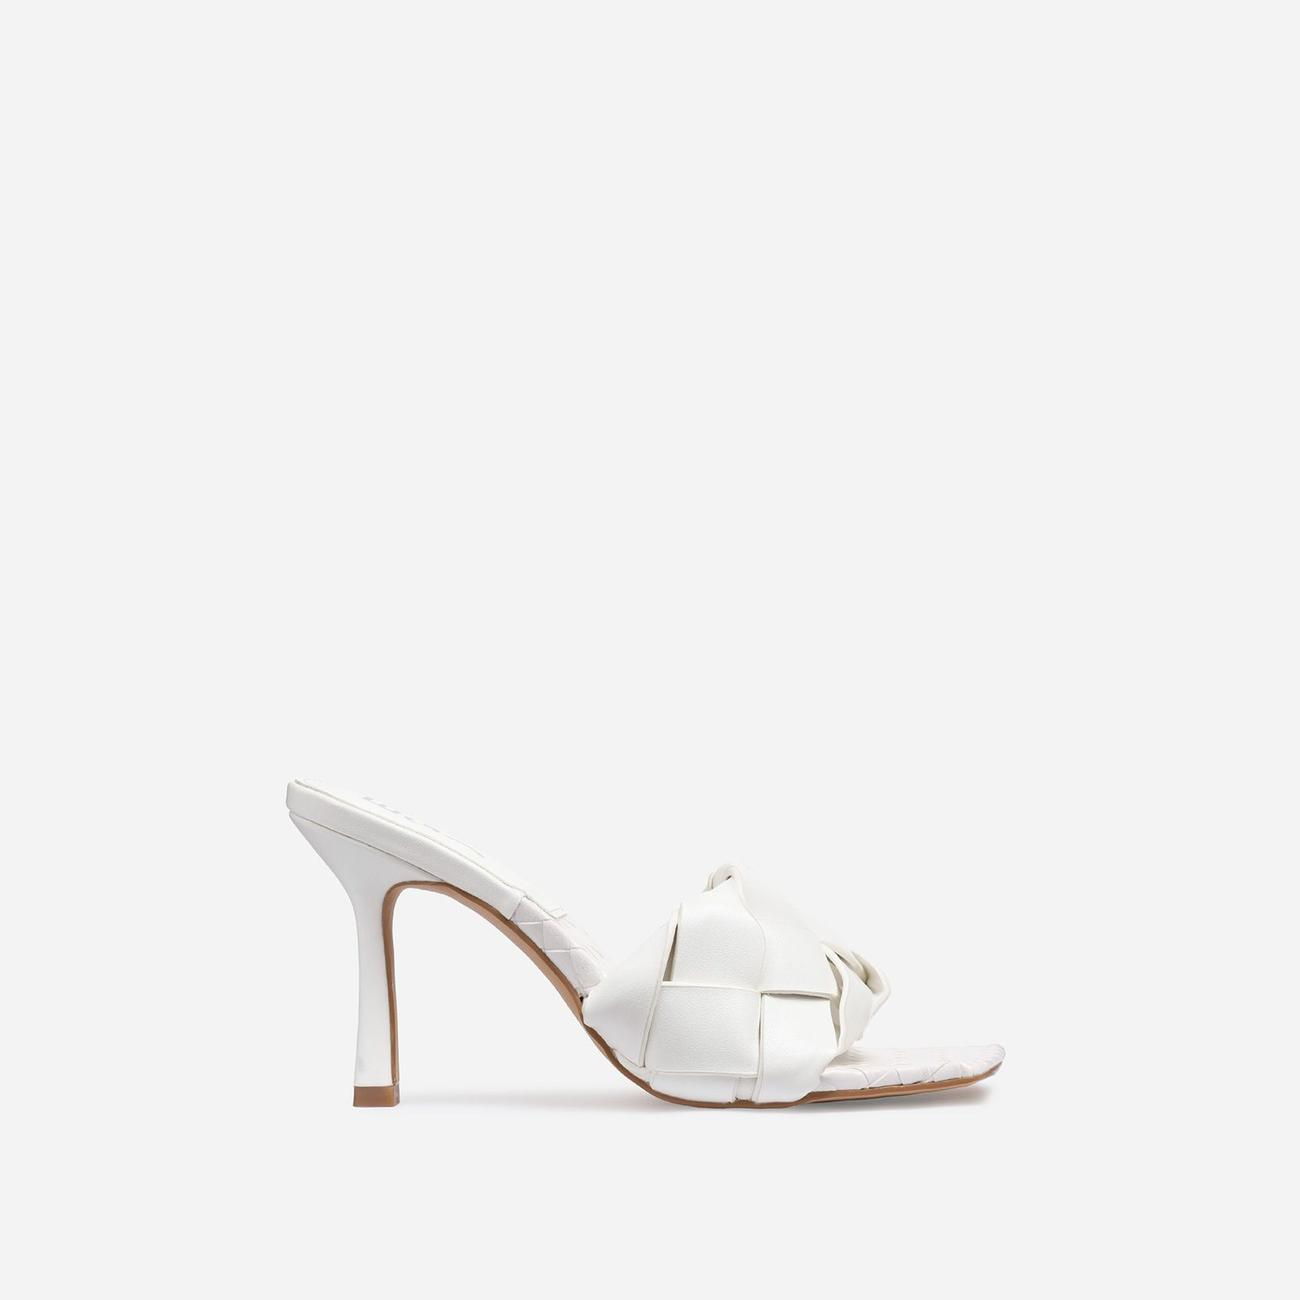 Turntup Woven Square Peep Toe Mule In White Faux Leather Image 1